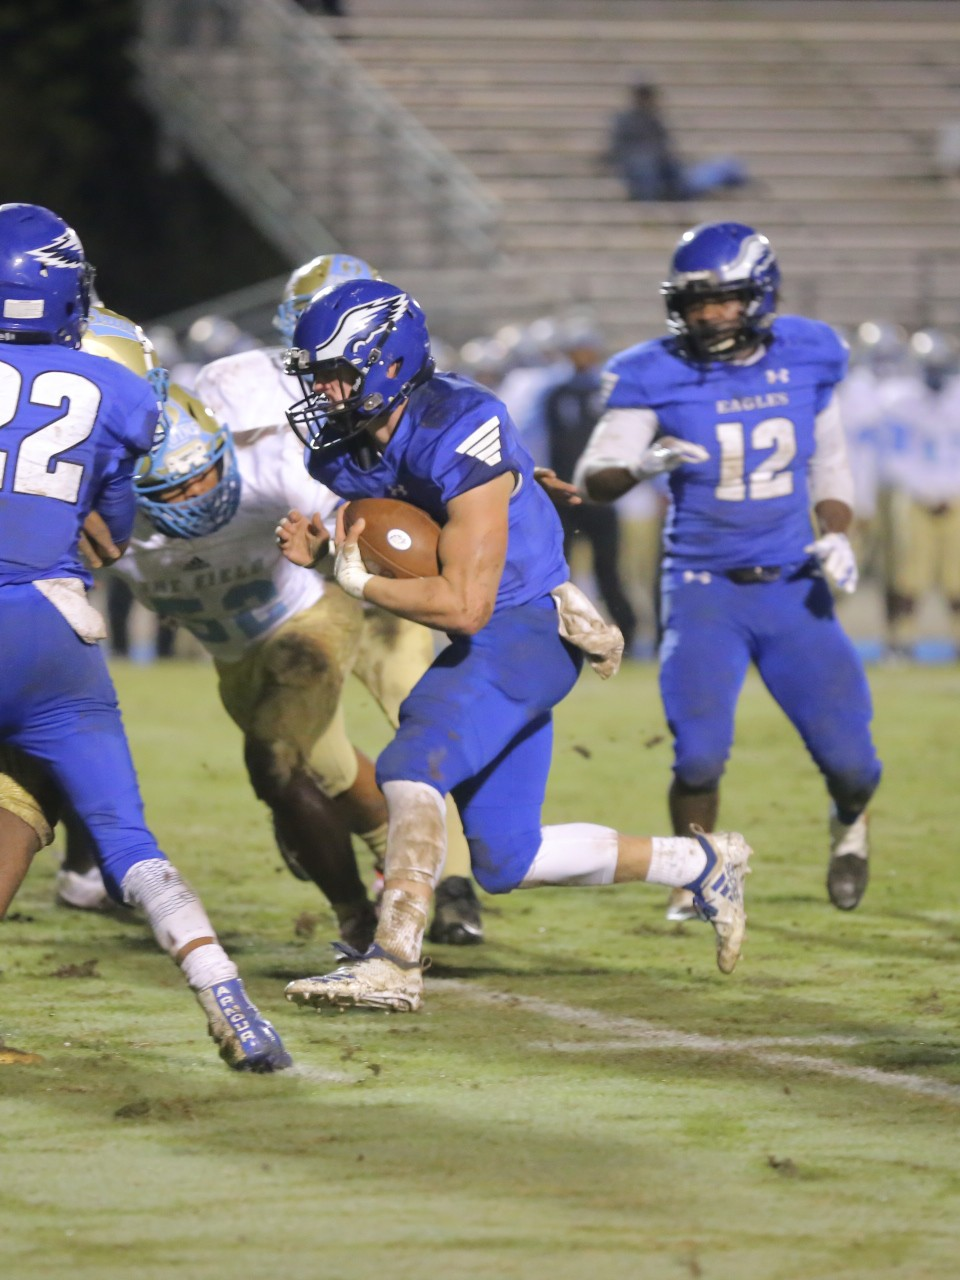 Congratulations to East Bladen for making the NCHSAA Class 2A Football Play-offs